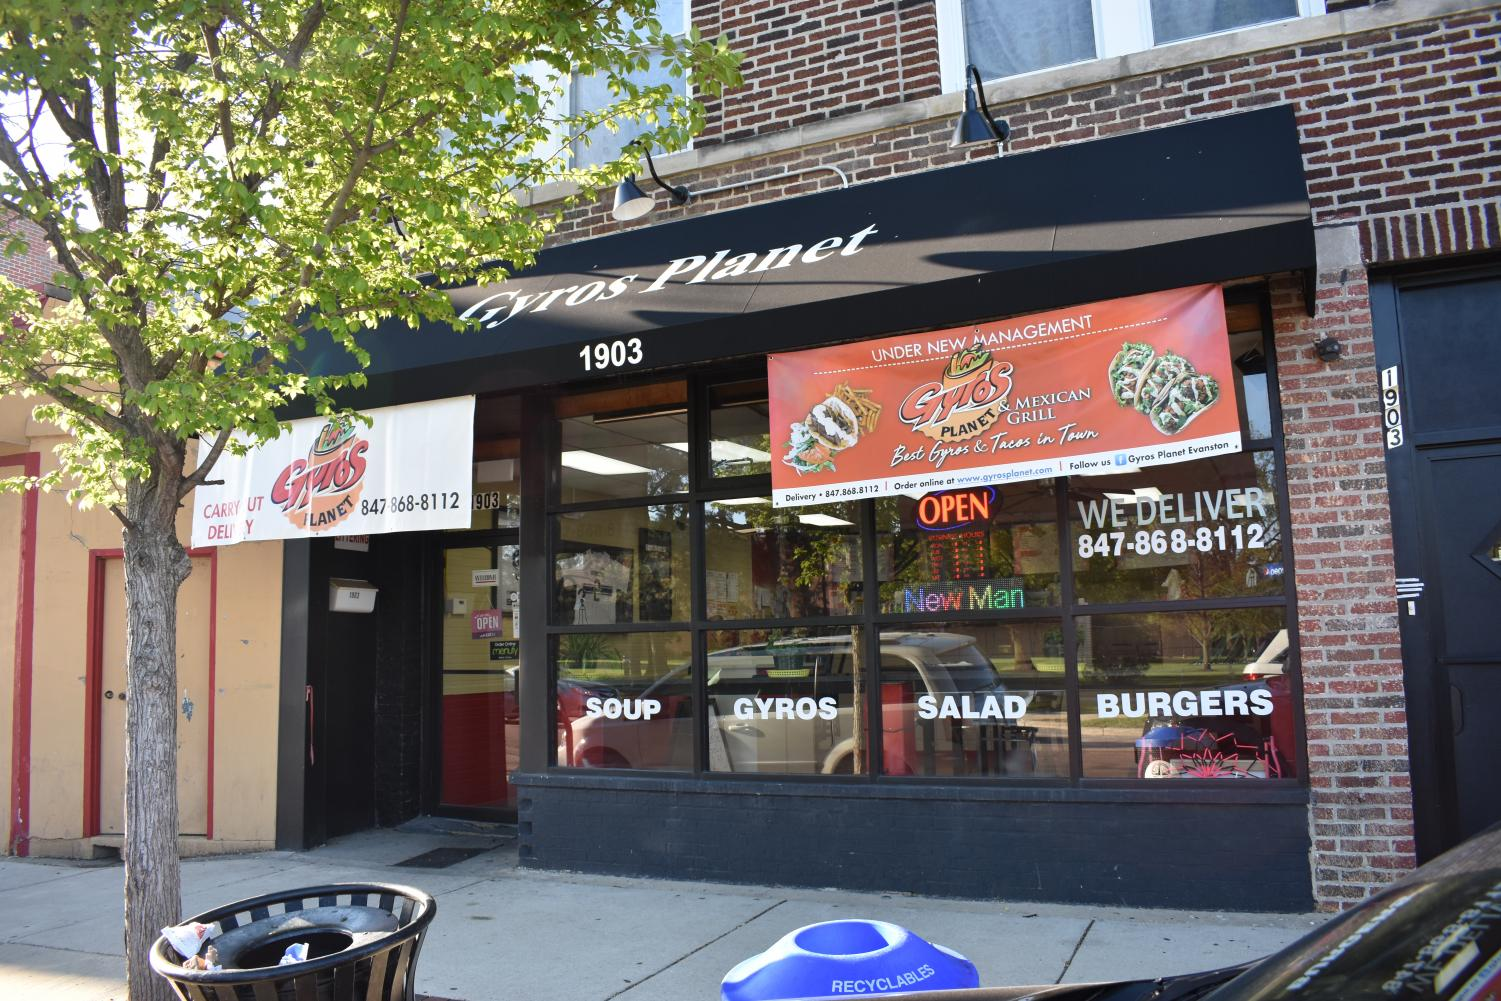 Gyros Planet, 1903 Church St. Co-owners Erika Castro Sanchez and Pablo Sanchez reopened the business with the hopes of building community.